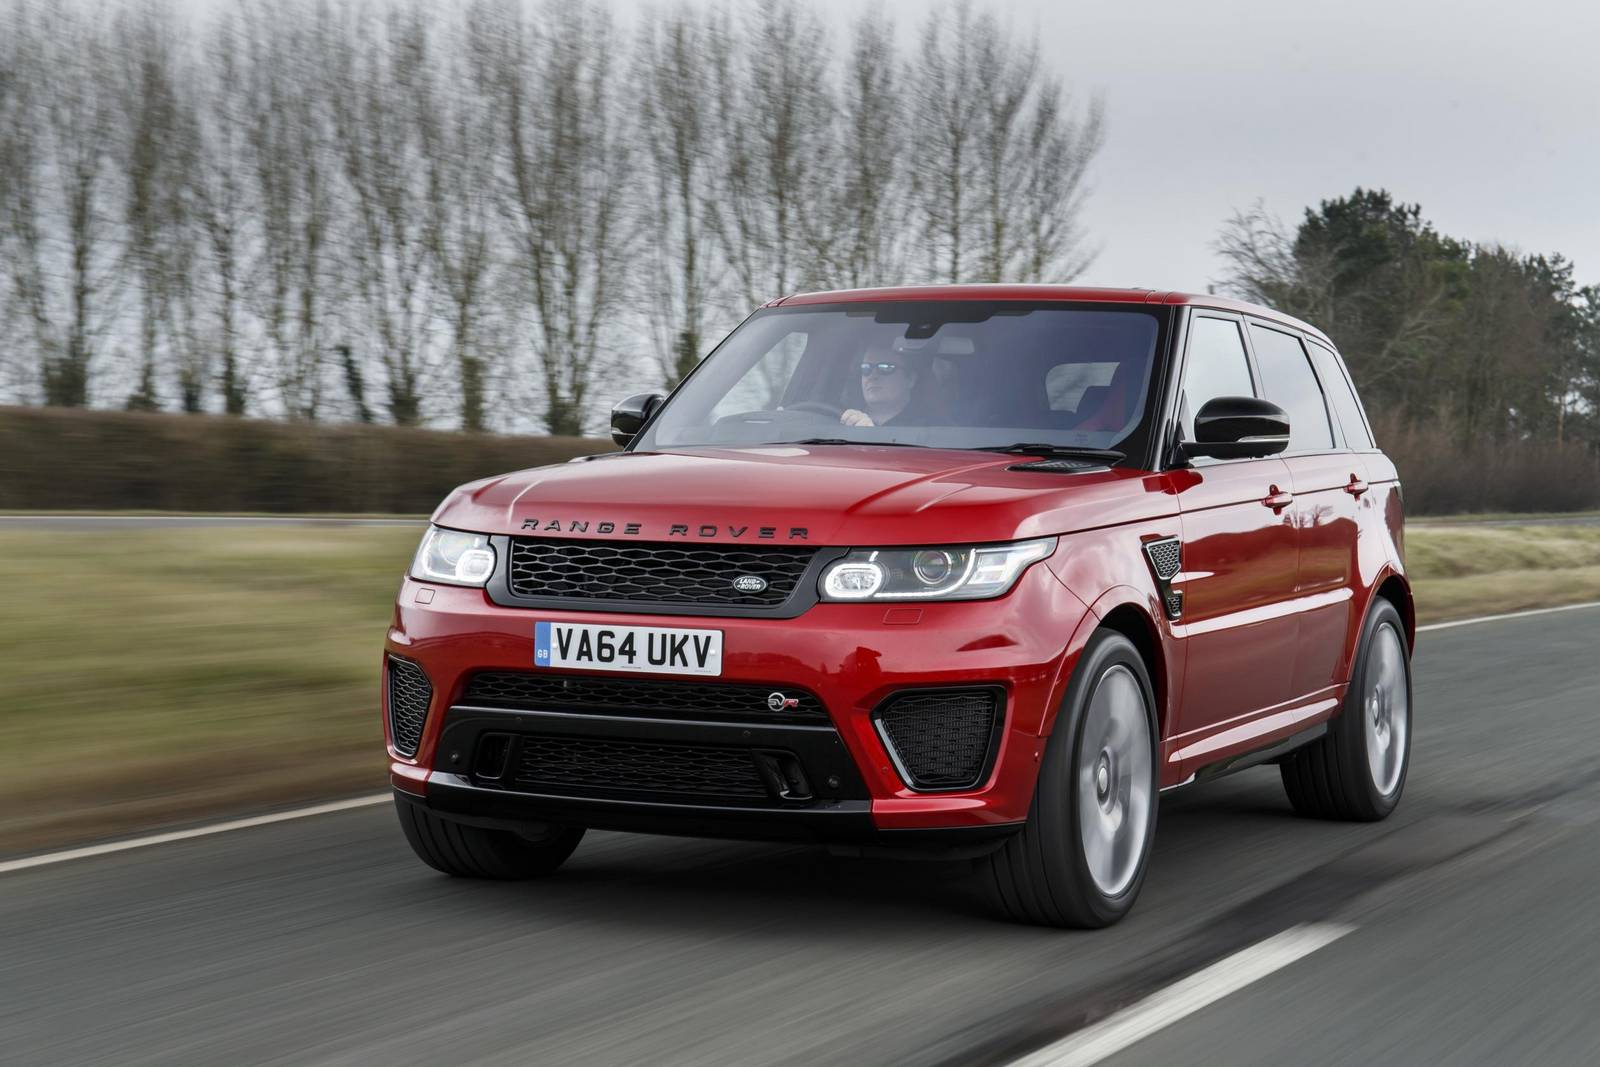 2016 range rover sport svr review gtspirit. Black Bedroom Furniture Sets. Home Design Ideas